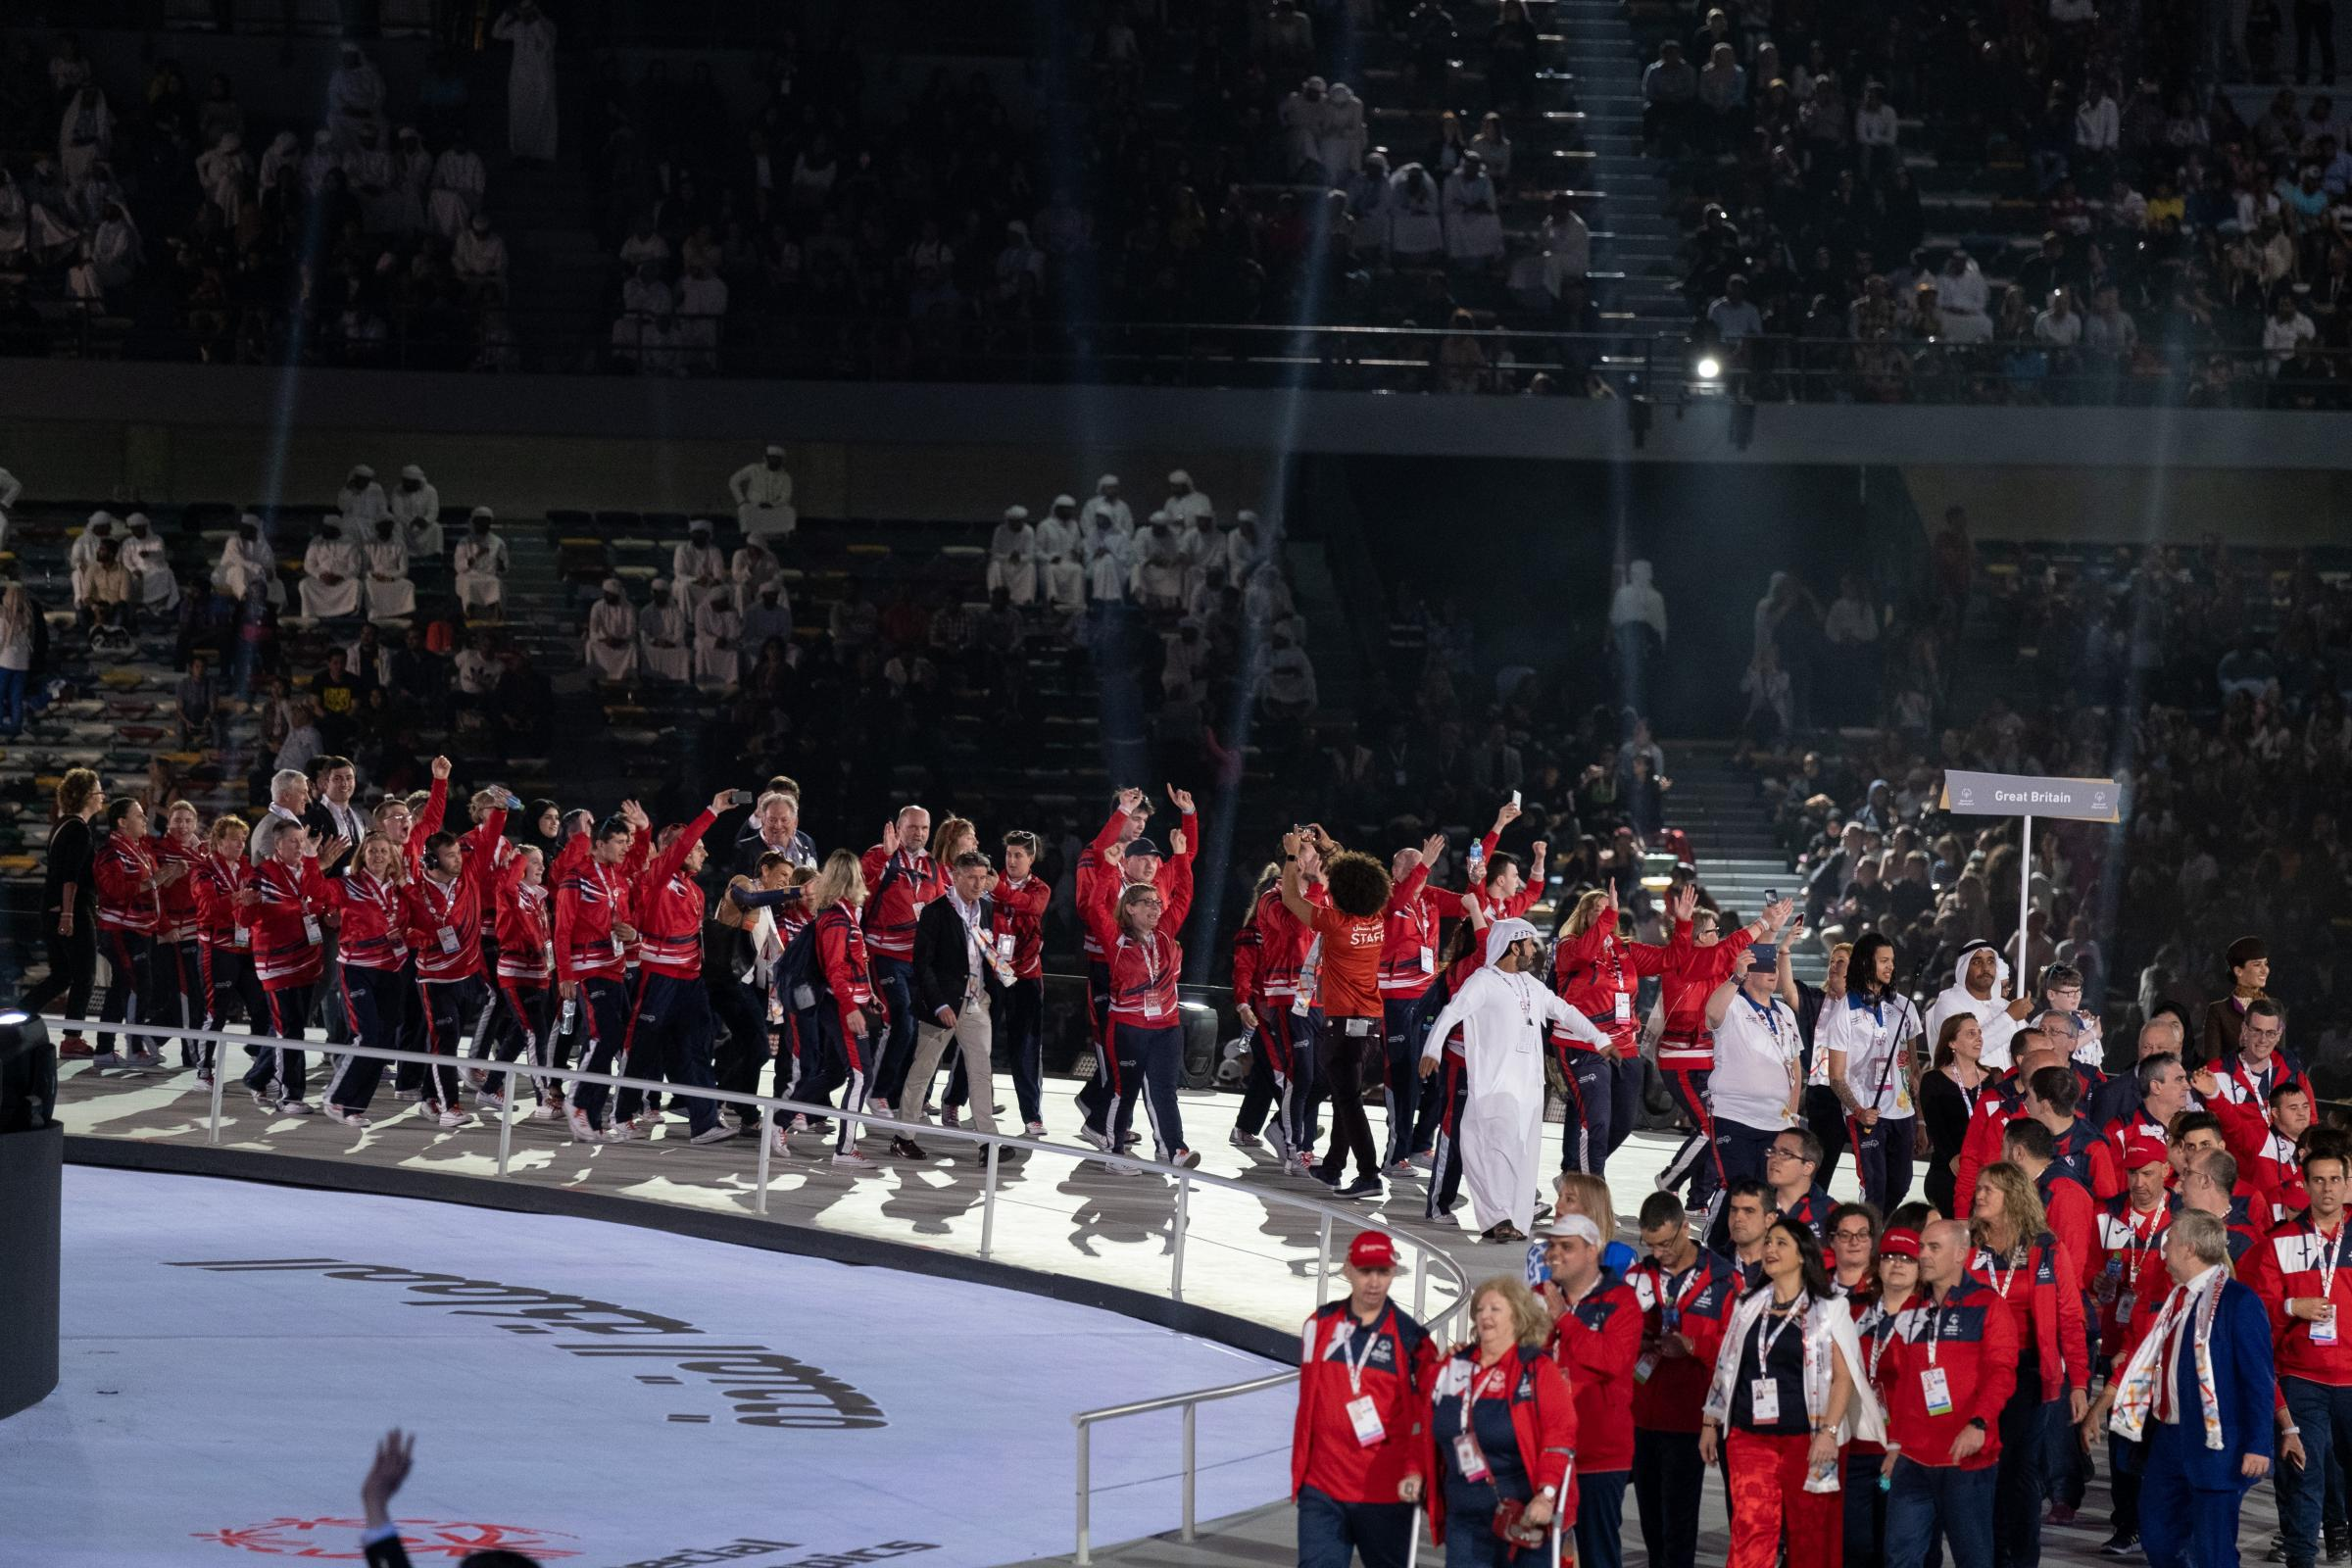 The Special Olympics Great Britain team arrive at the opening ceremony of the Special Olympics World Games